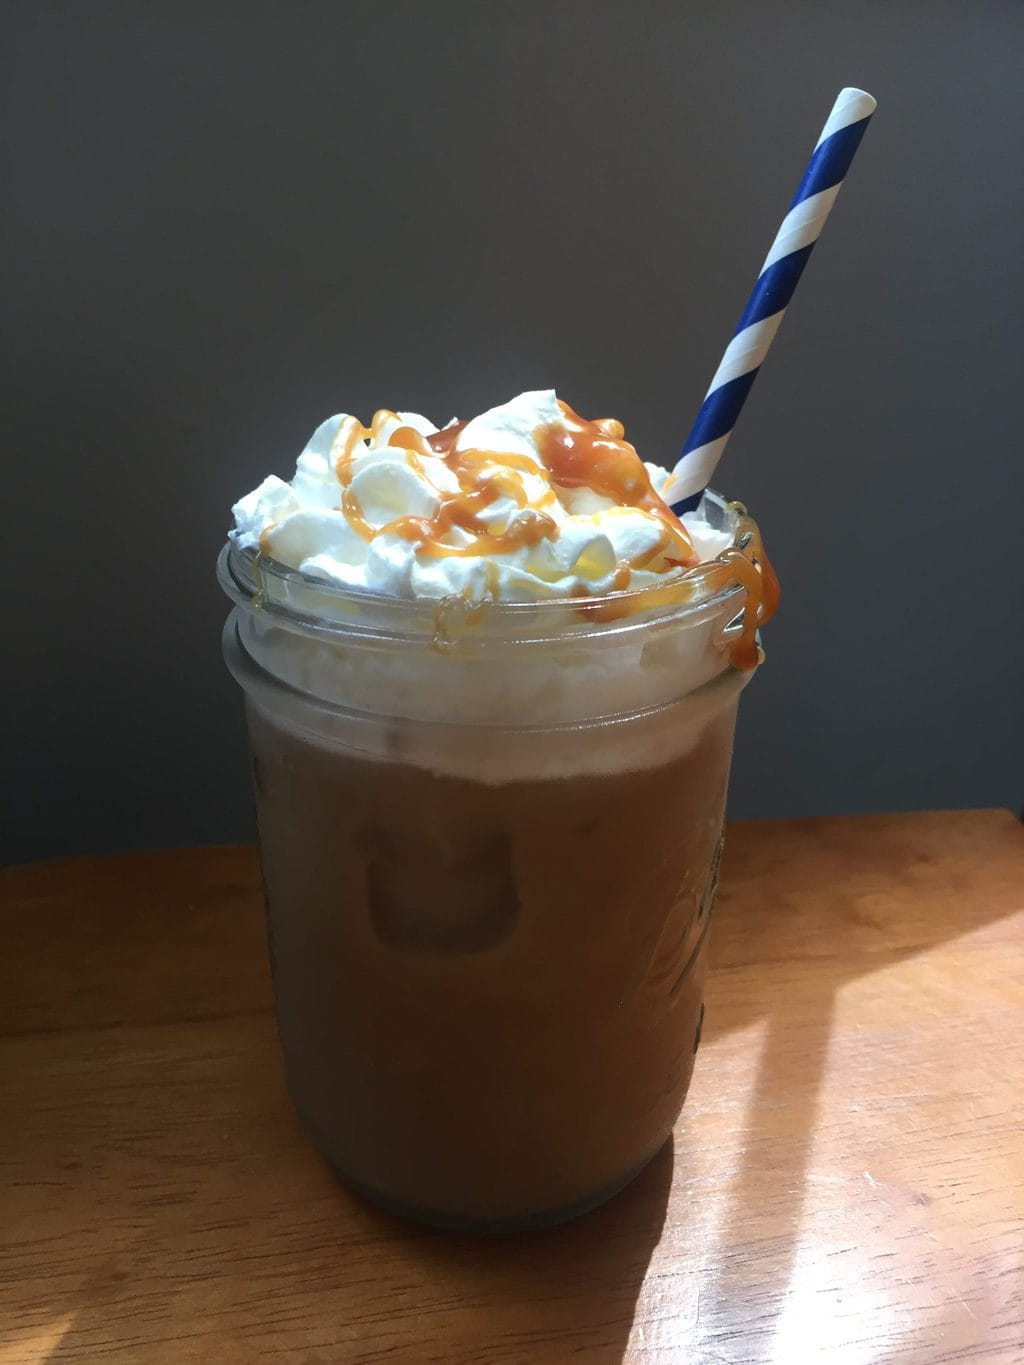 Macchiato Caramel Iced Caramel Macchiato Recipe Sit Sipping Sweetly This Summer